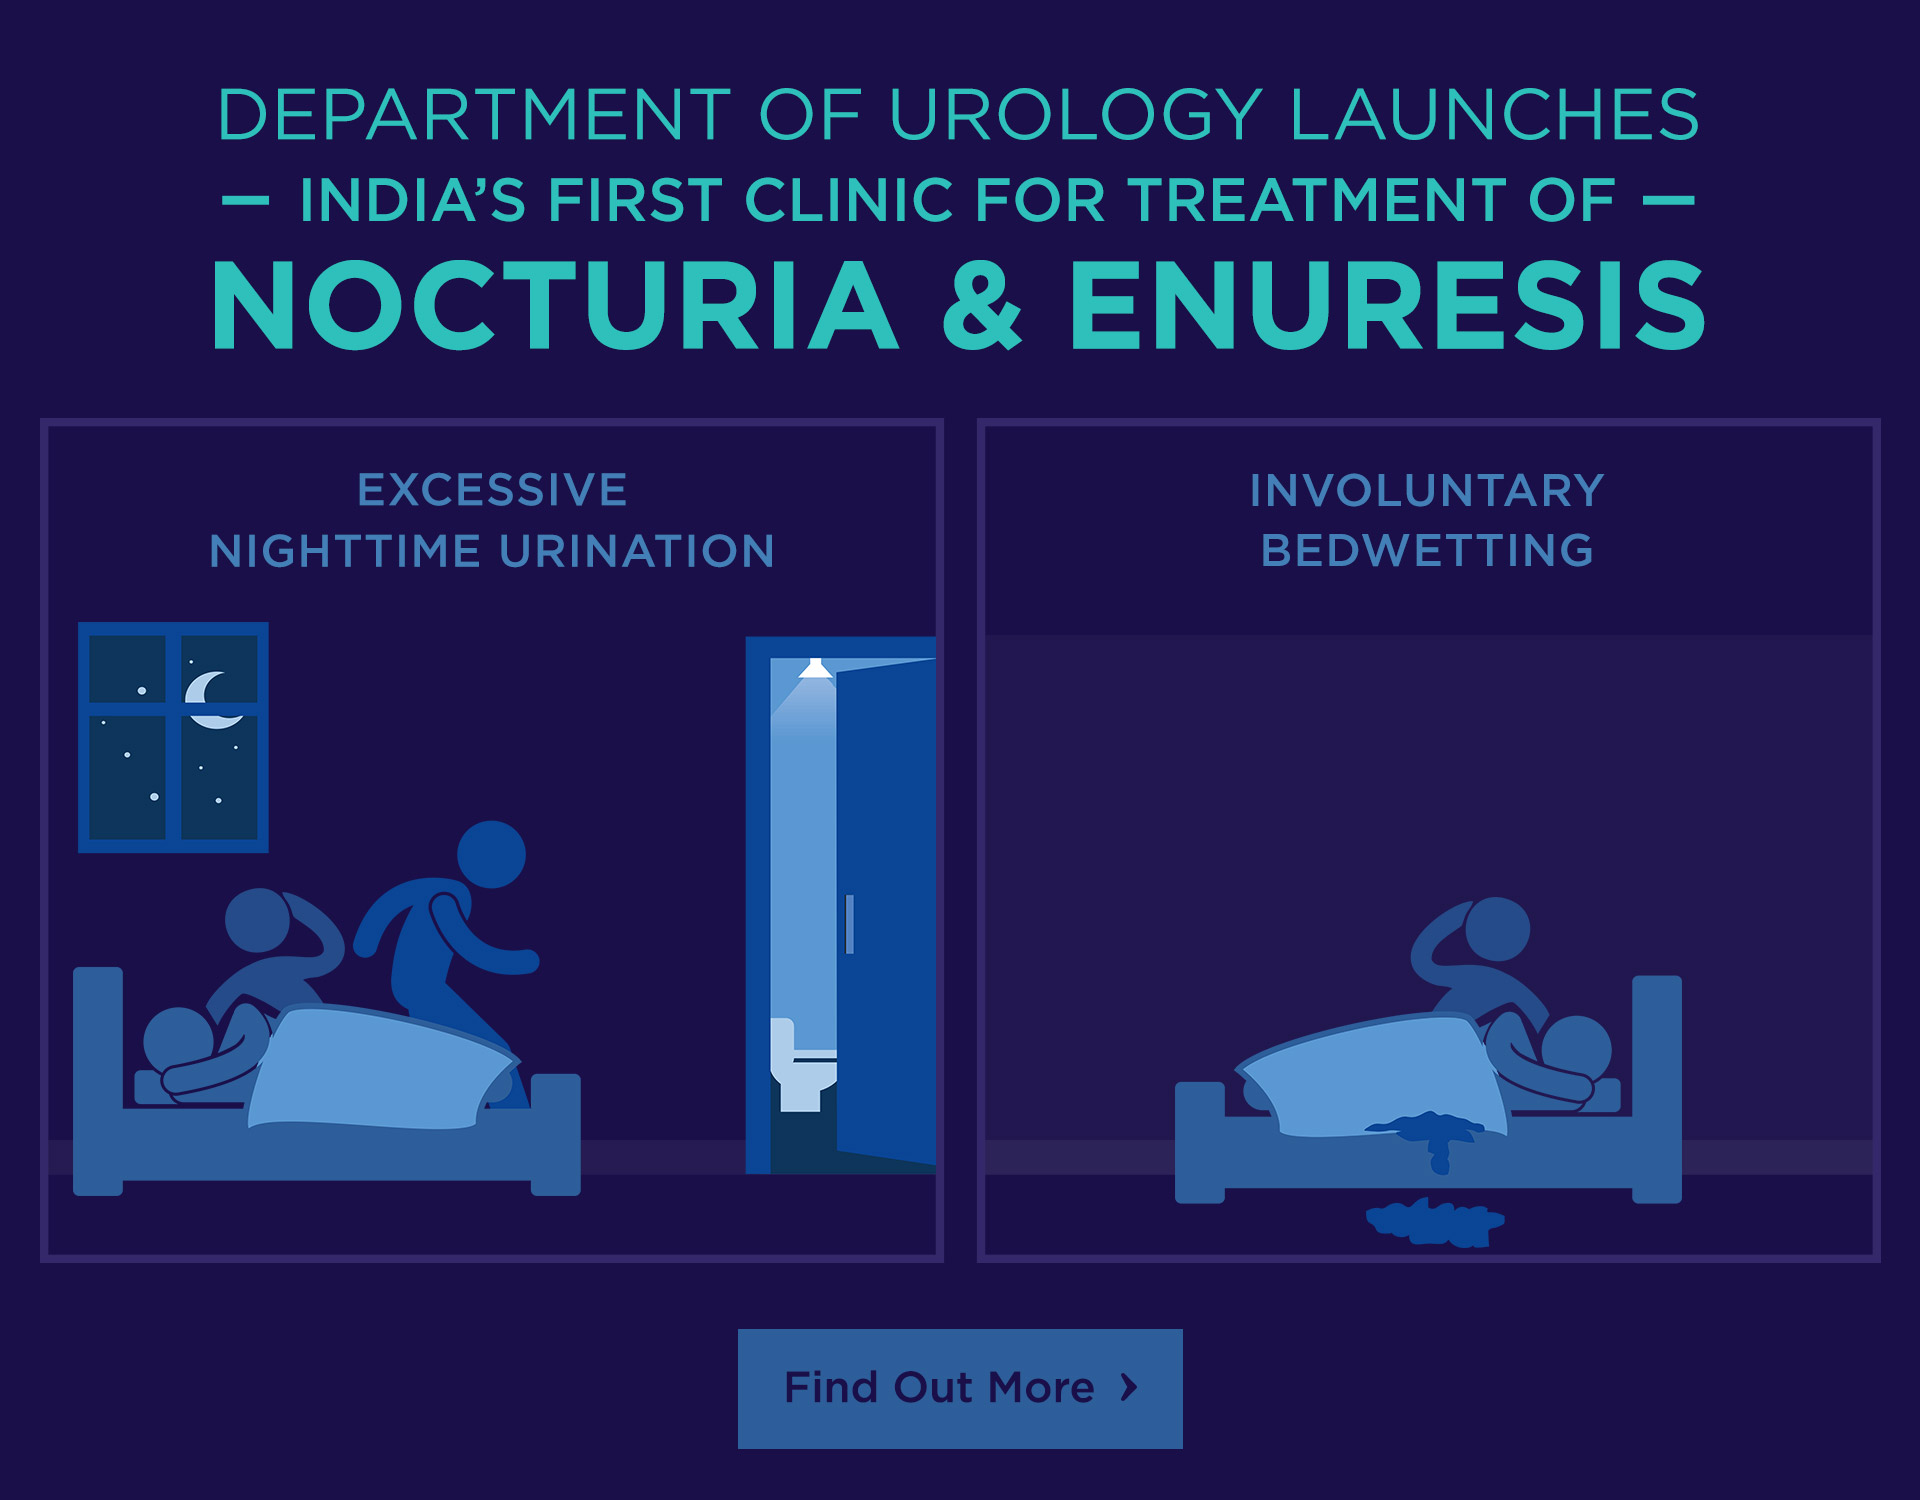 Kokilaben Dhirubhai Ambani Hospital - Treatment for Nocturia & Enuresis